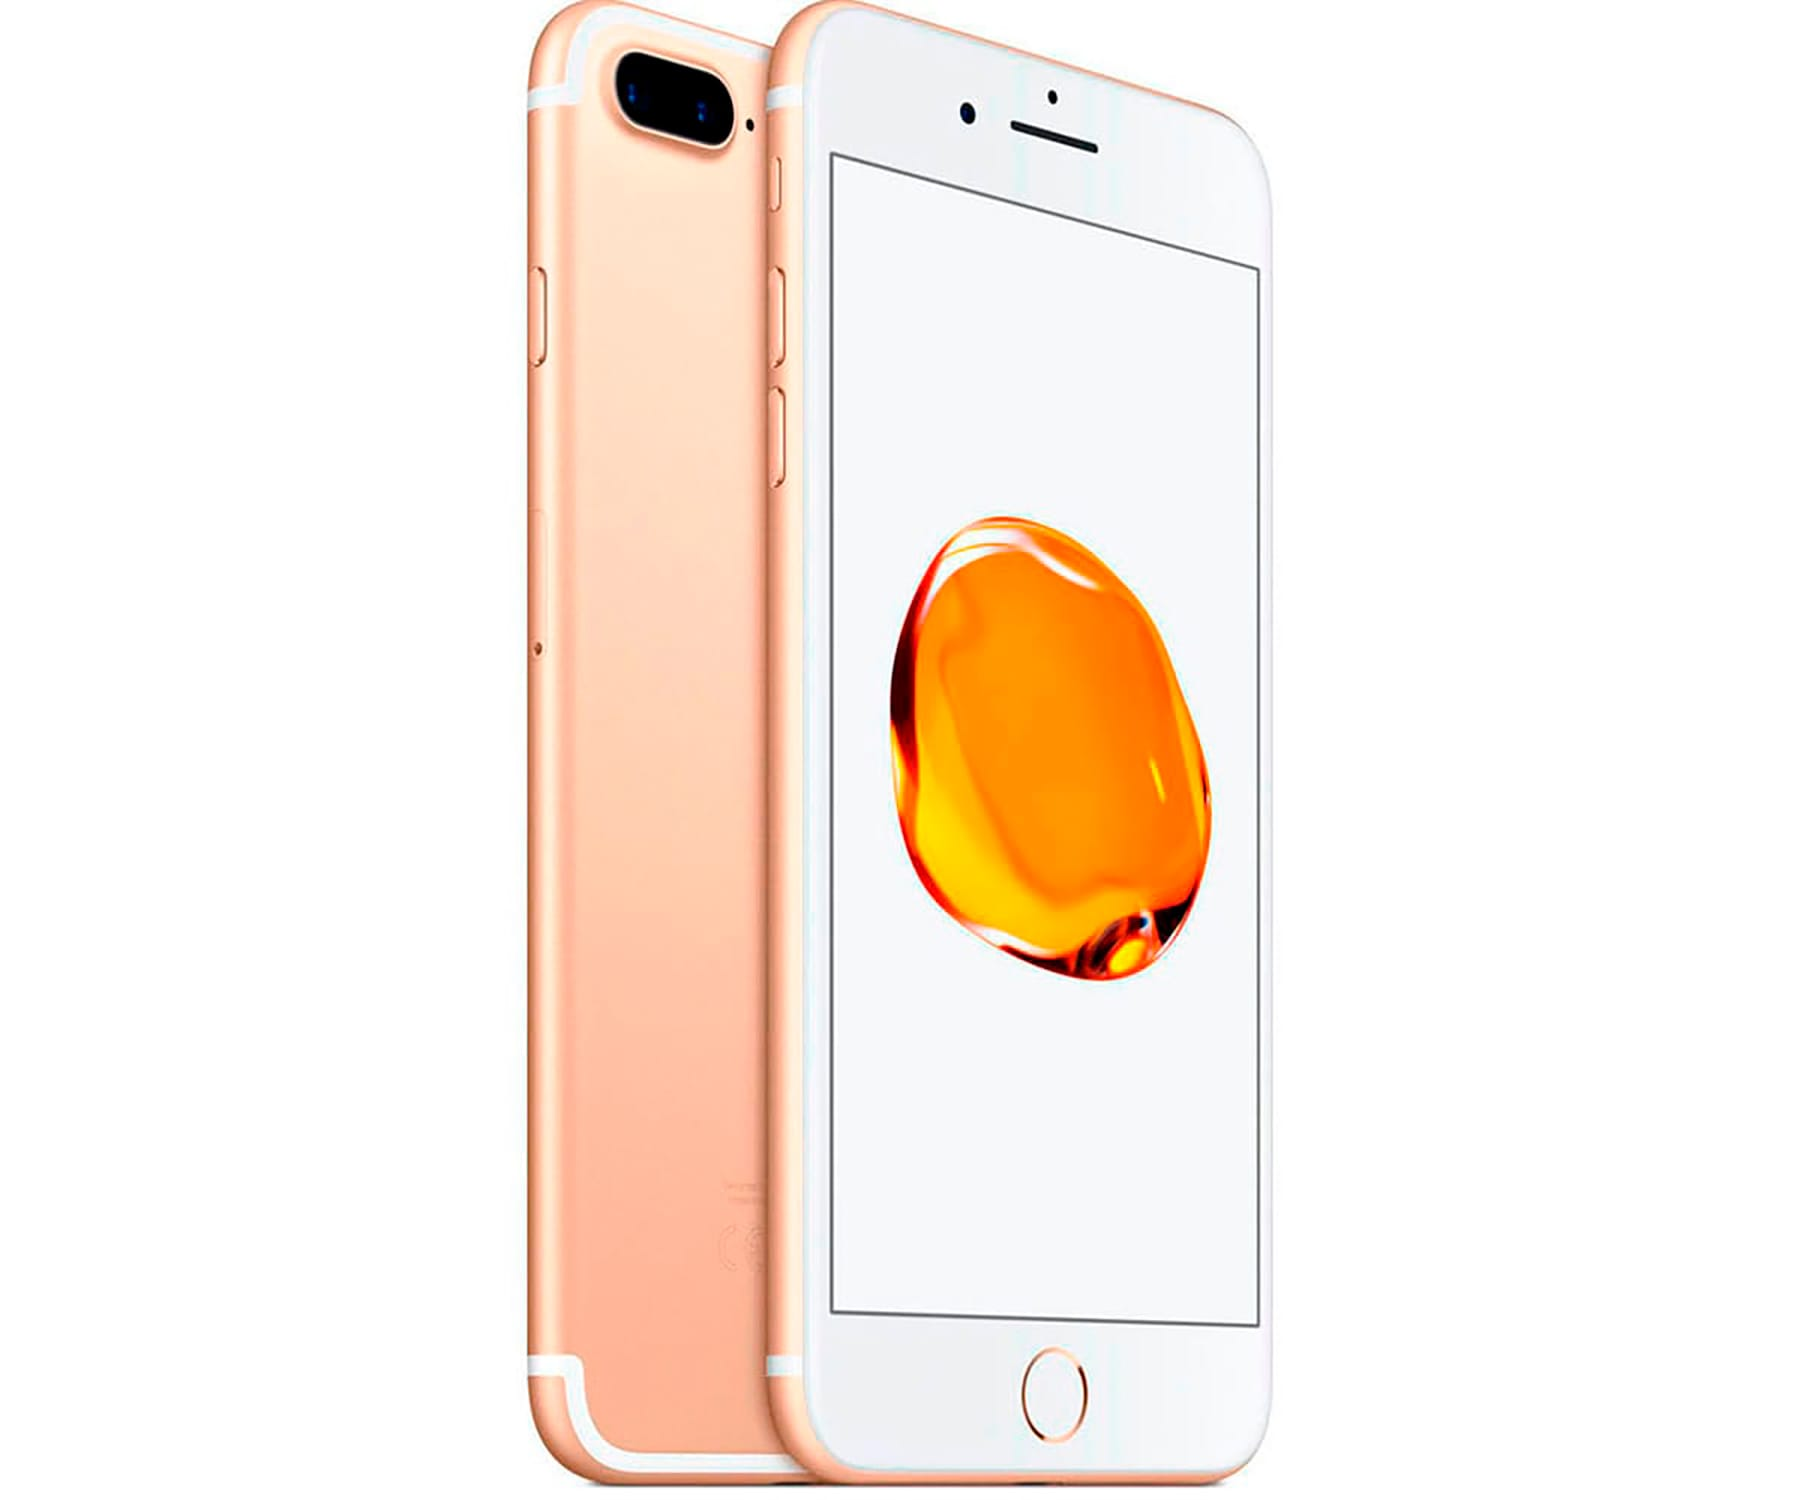 APPLE IPHONE 7 PLUS 32GB ORO REACONDICIONADO CPO MÓVIL 4G 5.5 RETINA FHD/4CORE/32GB/3GB RAM/12MP+1